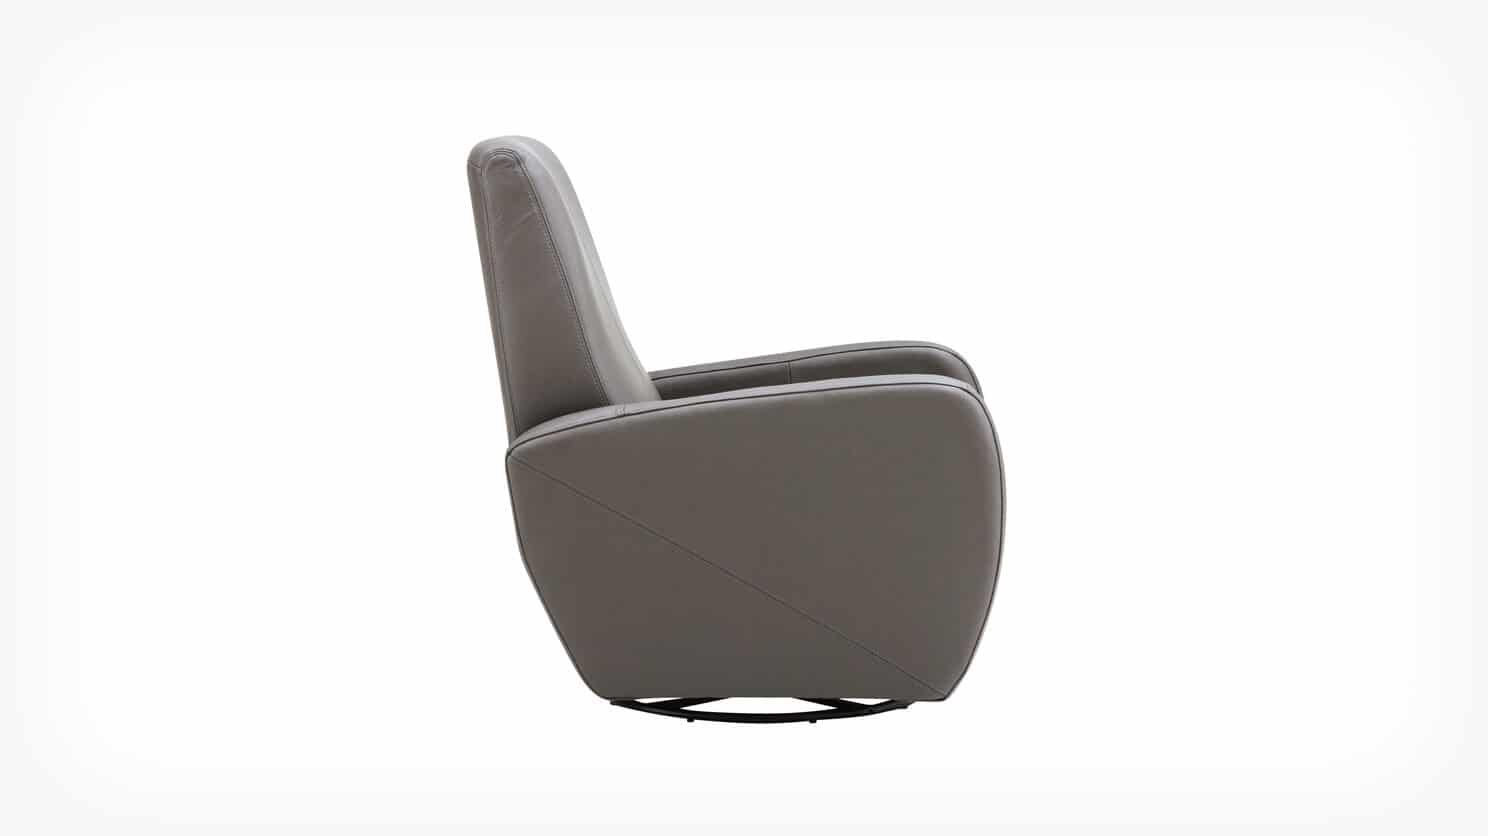 37073 71 2 chairs karbon chair disco leather side w swivel